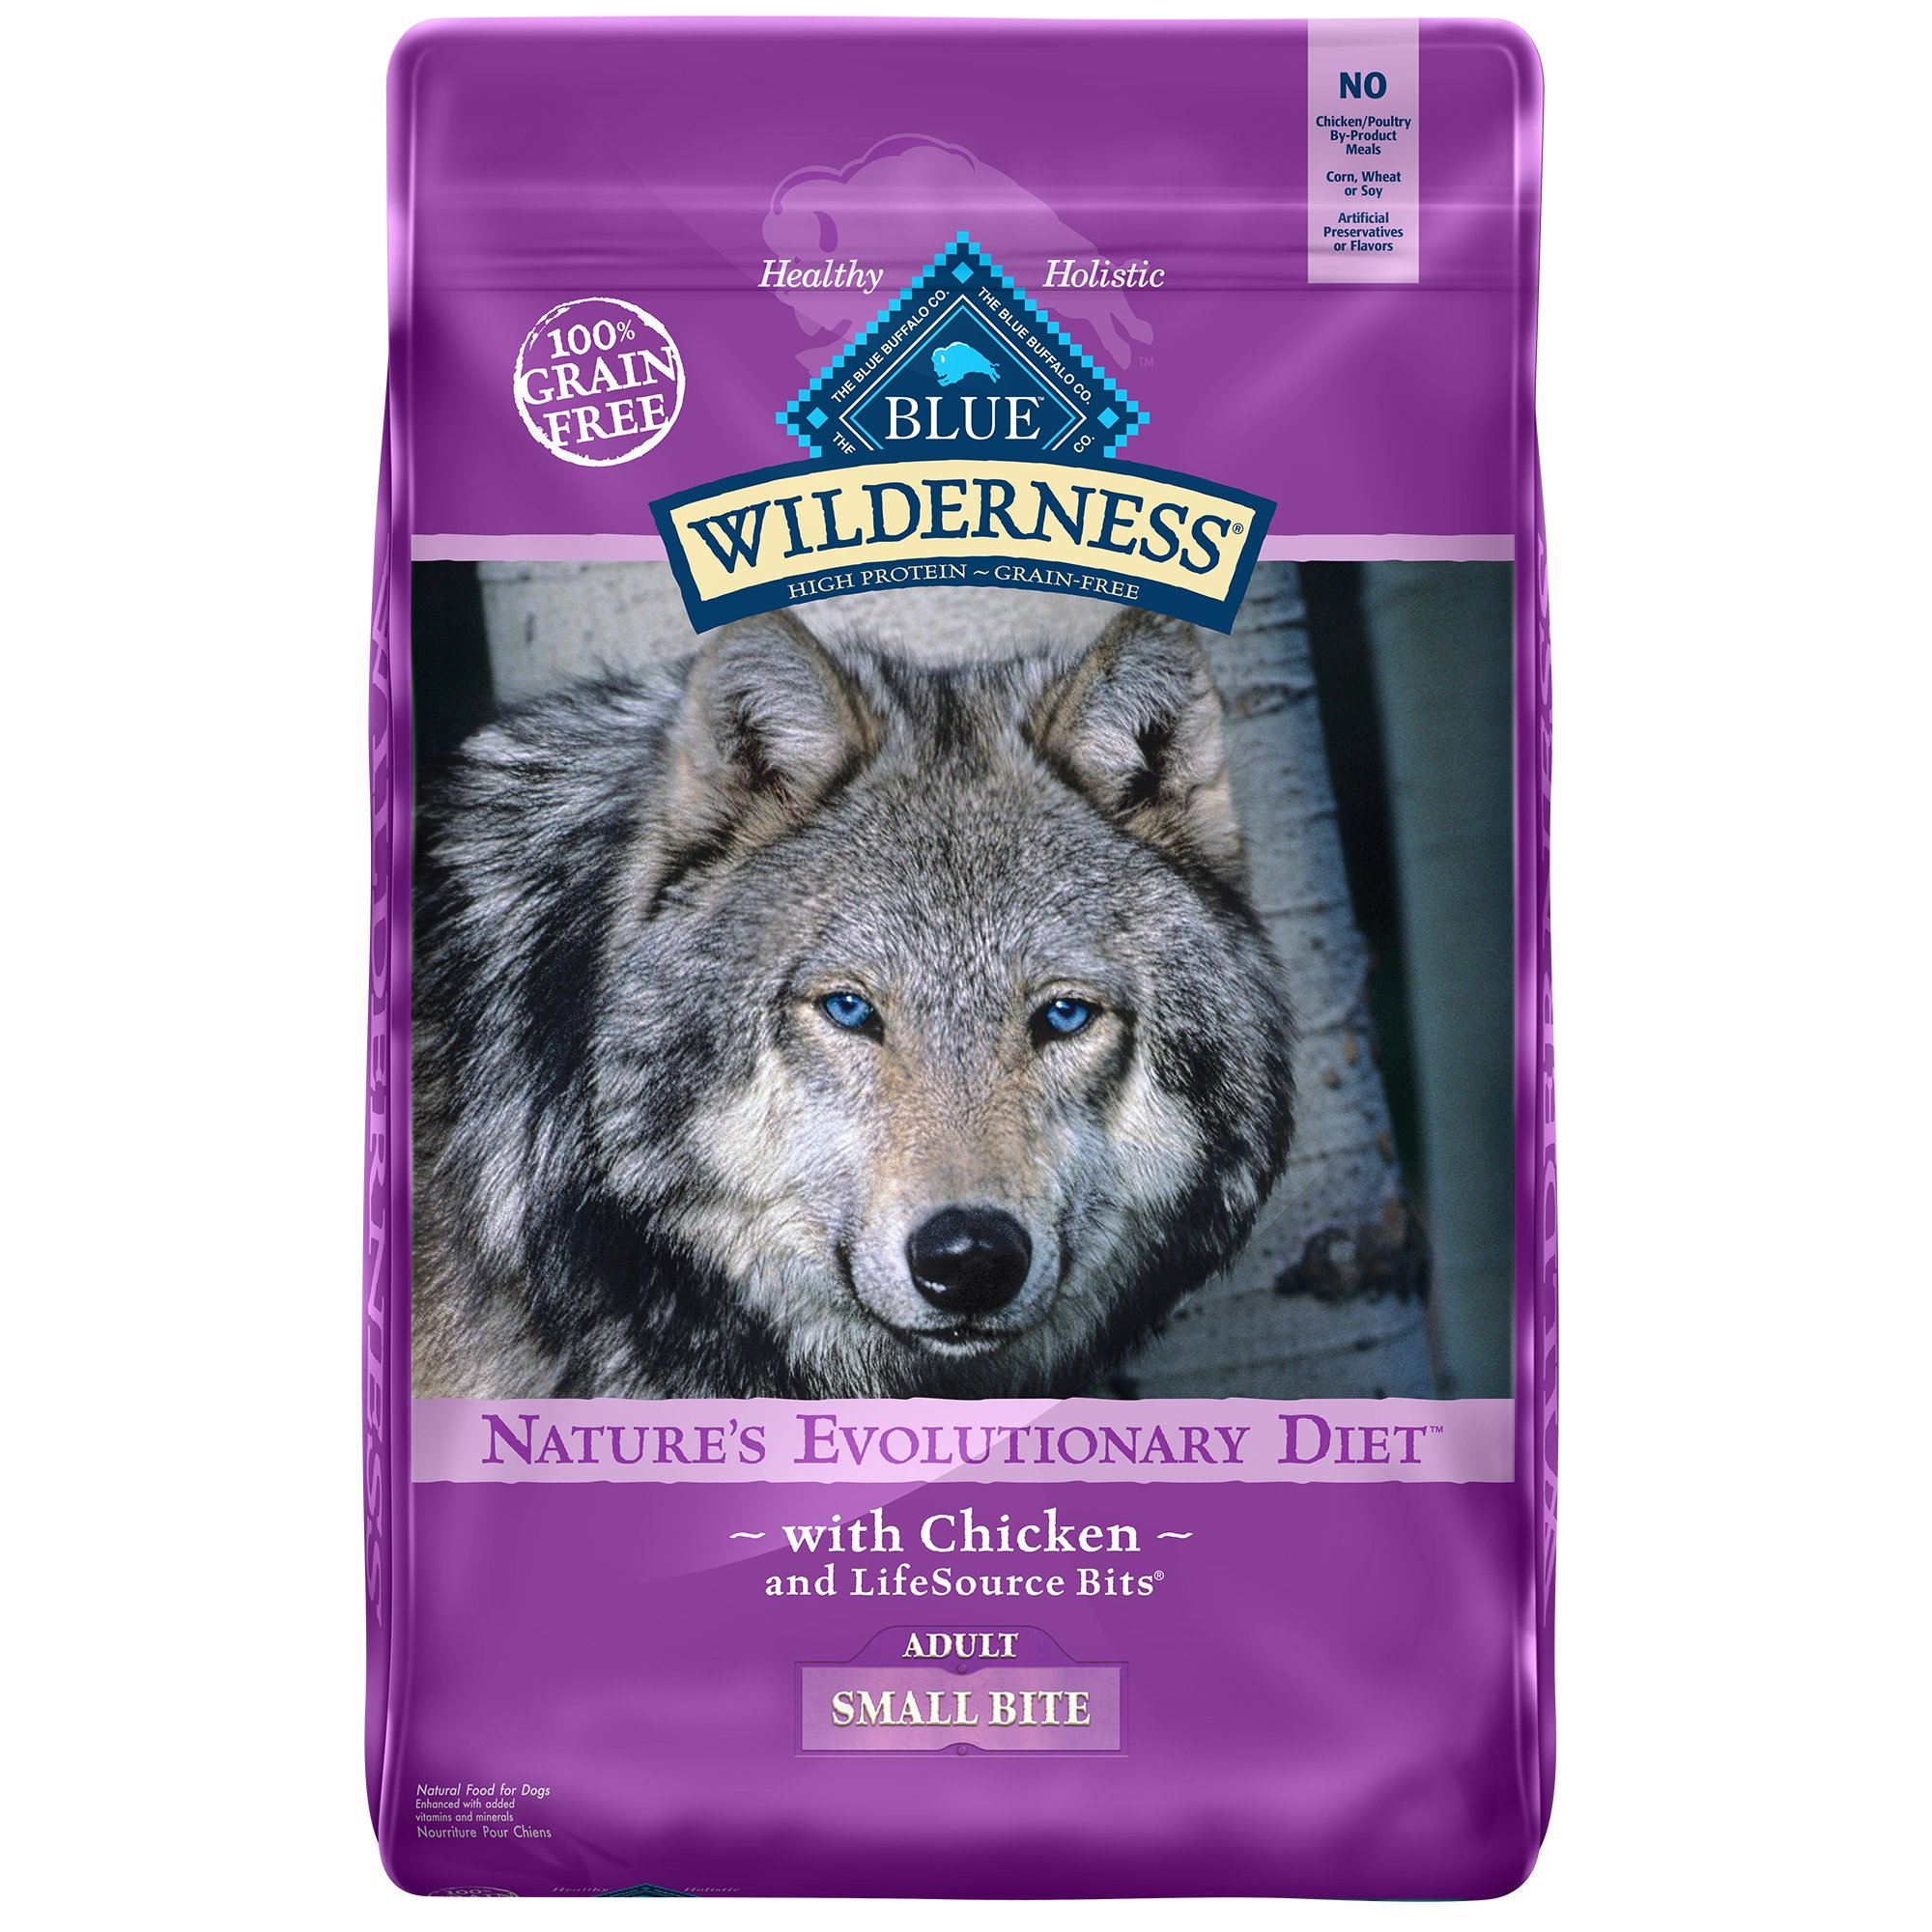 image relating to Blue Buffalo Dog Food Coupons Printable named Blue buffalo grain cost-free canine foodstuff discount codes : Survival straps